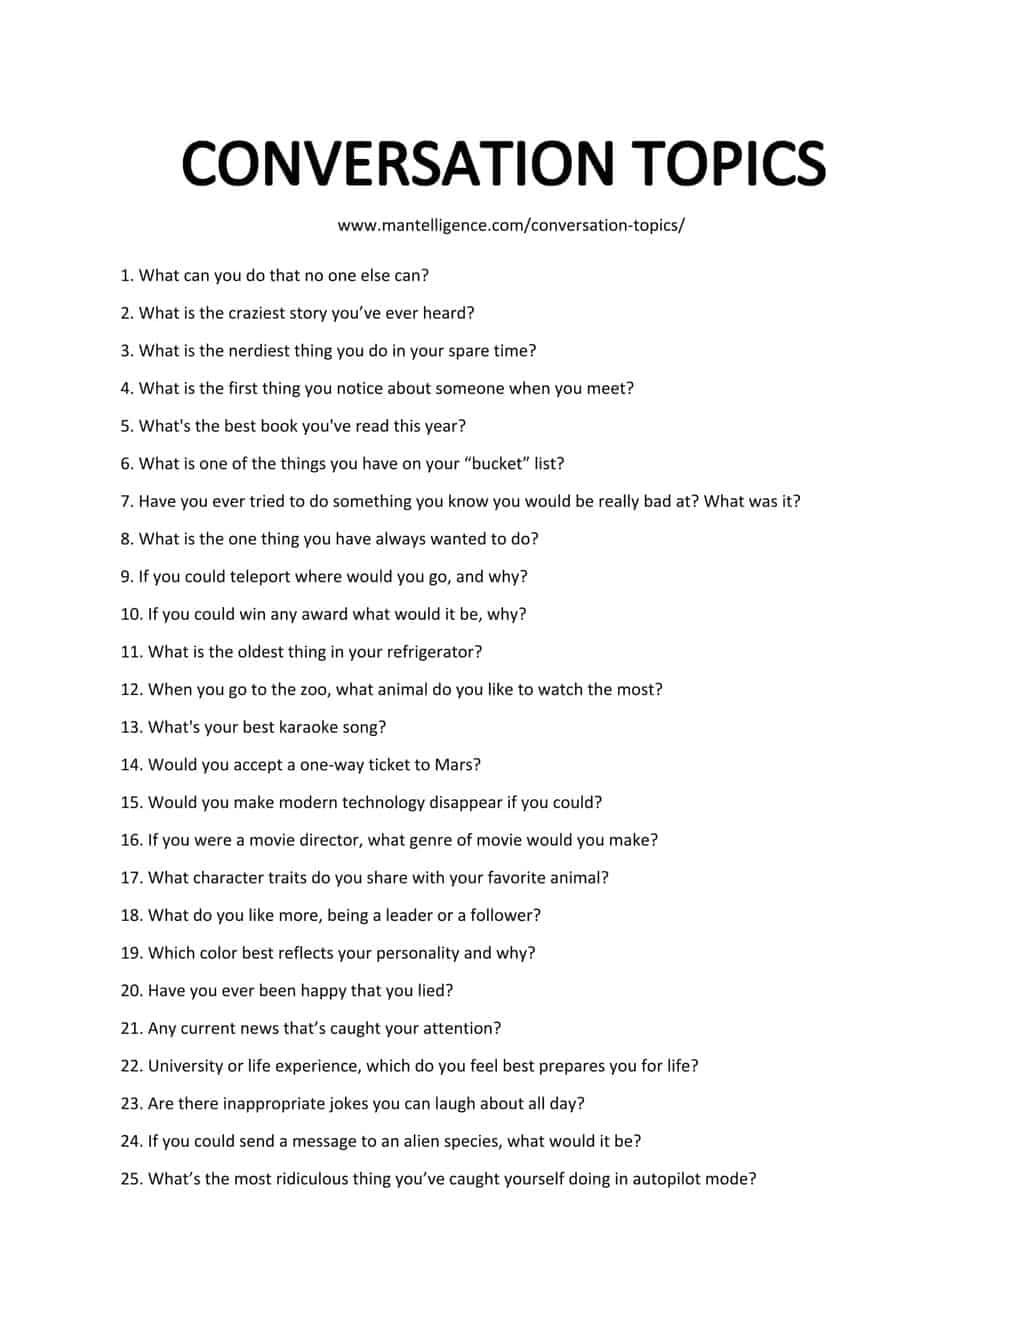 Esl conversation questions dating and relationships